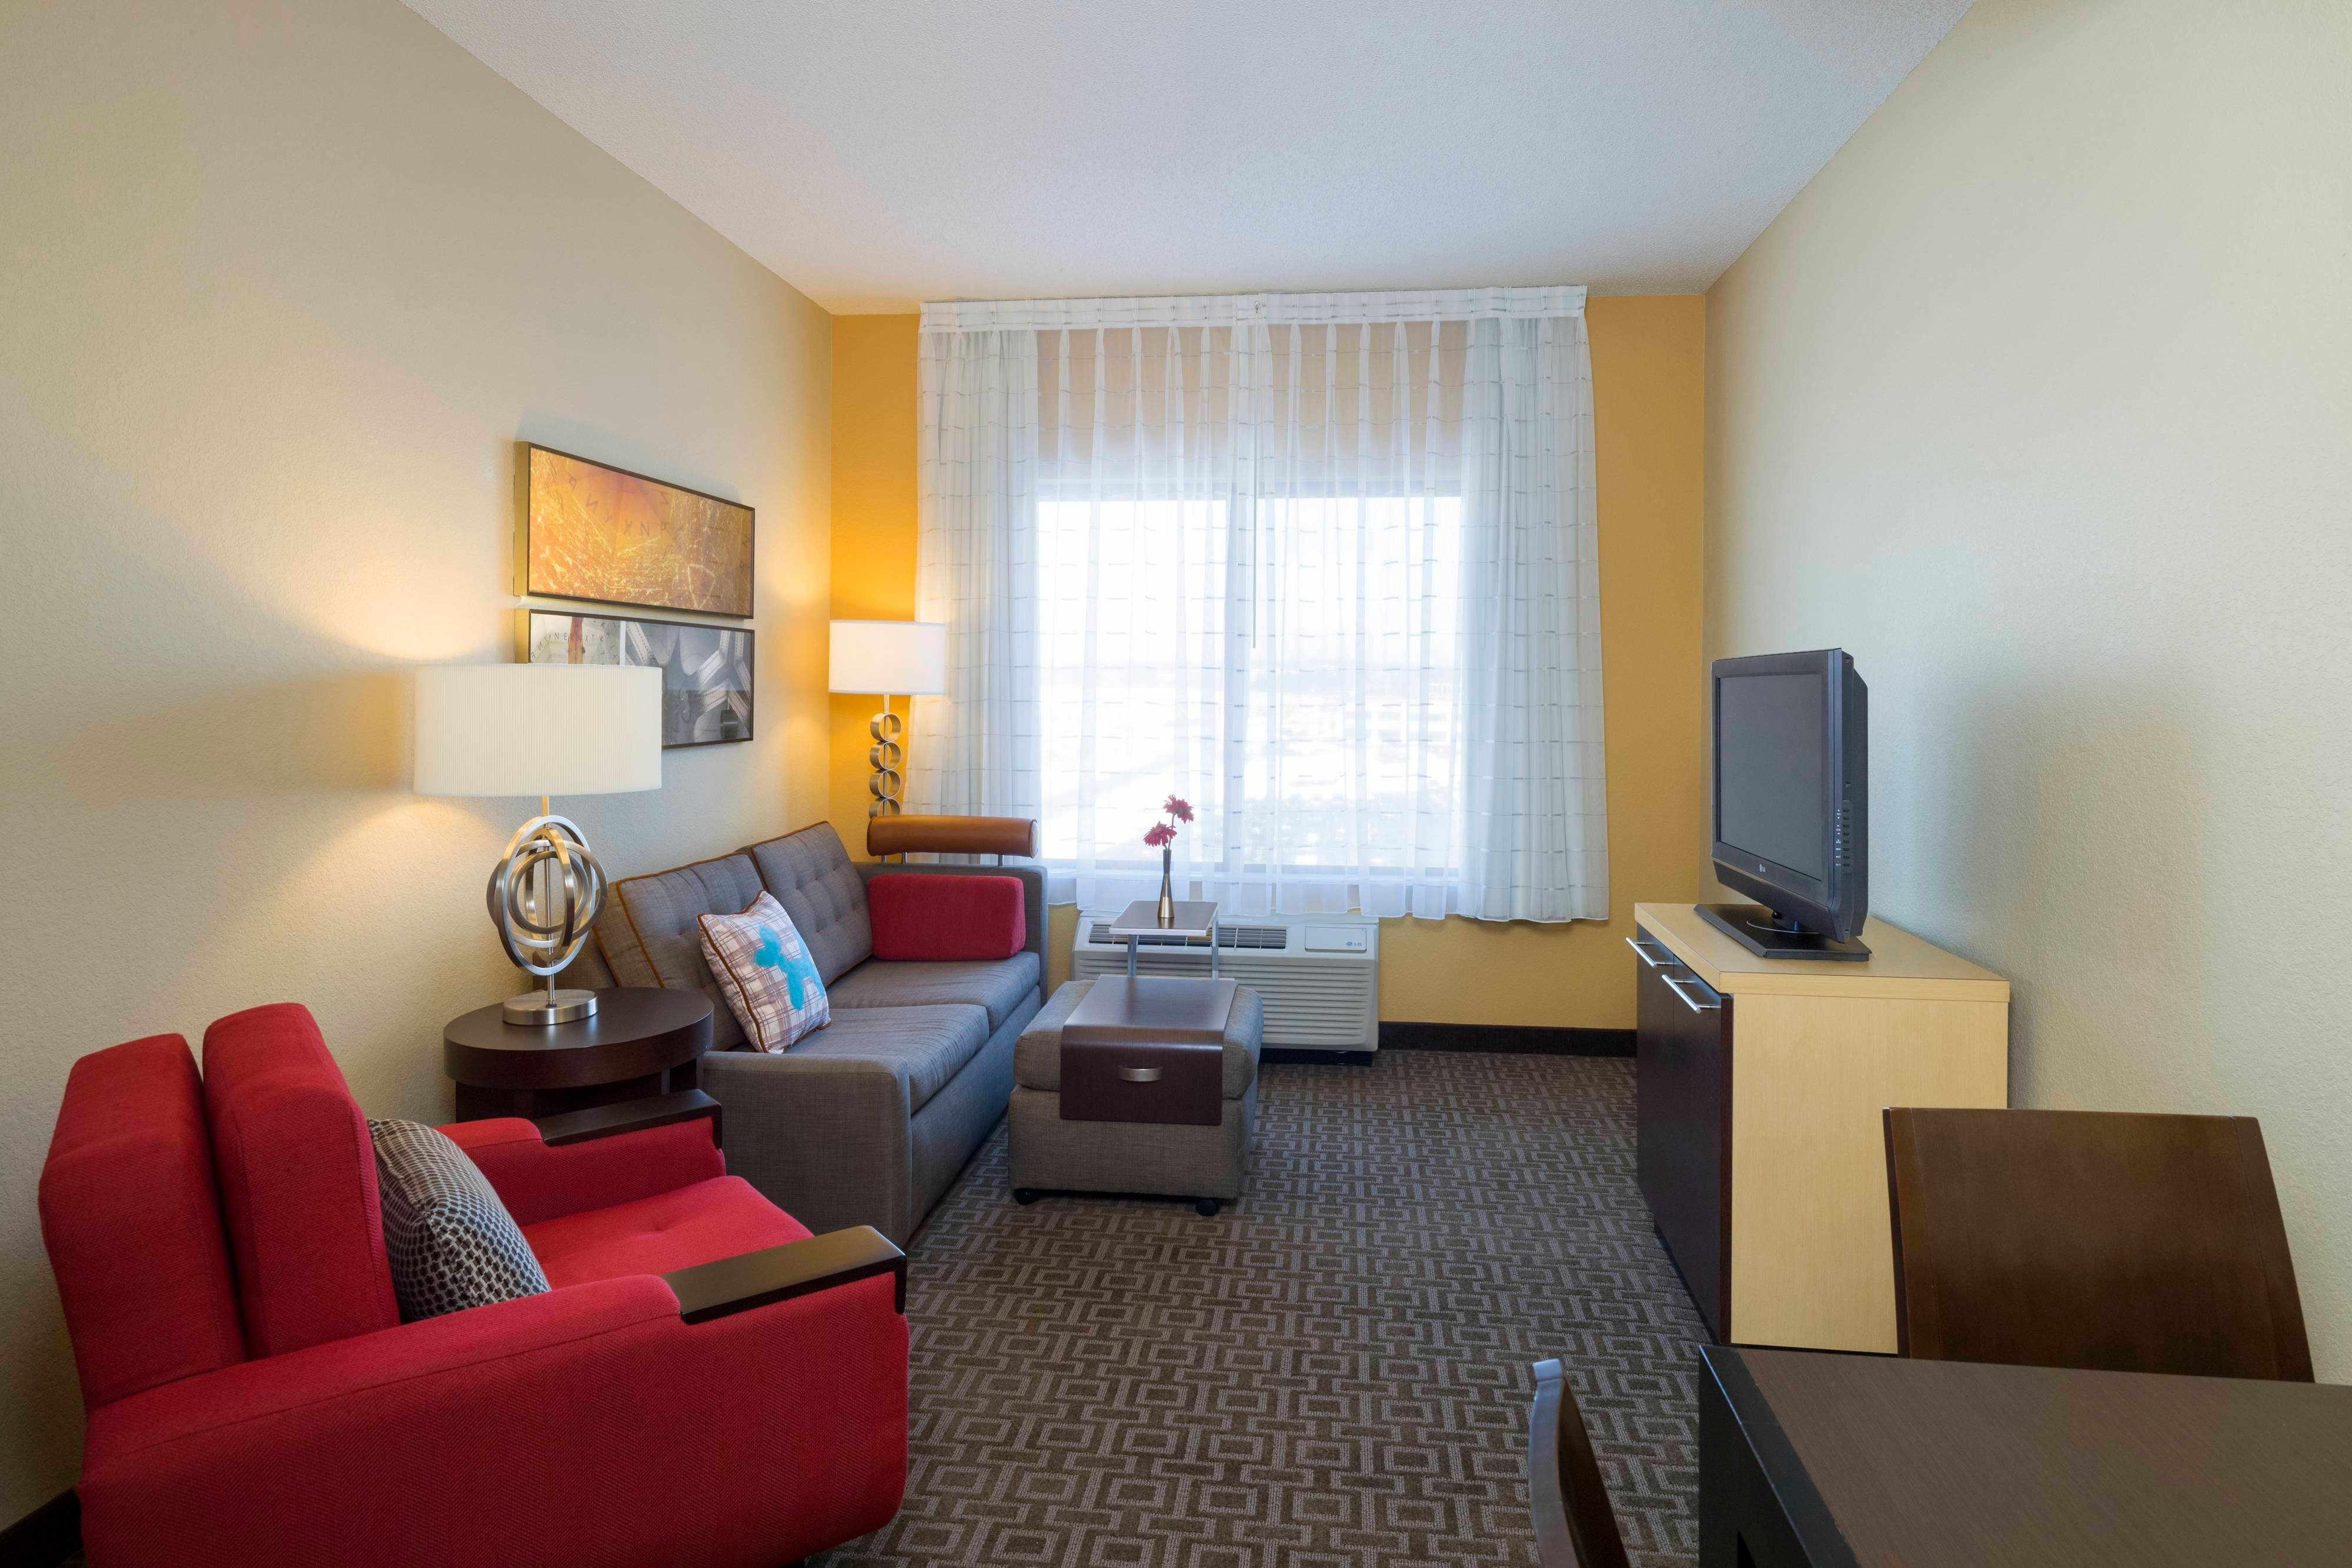 Extended stay harrisburg pa hotels towneplace suites - Hotels that have 2 bedroom suites ...